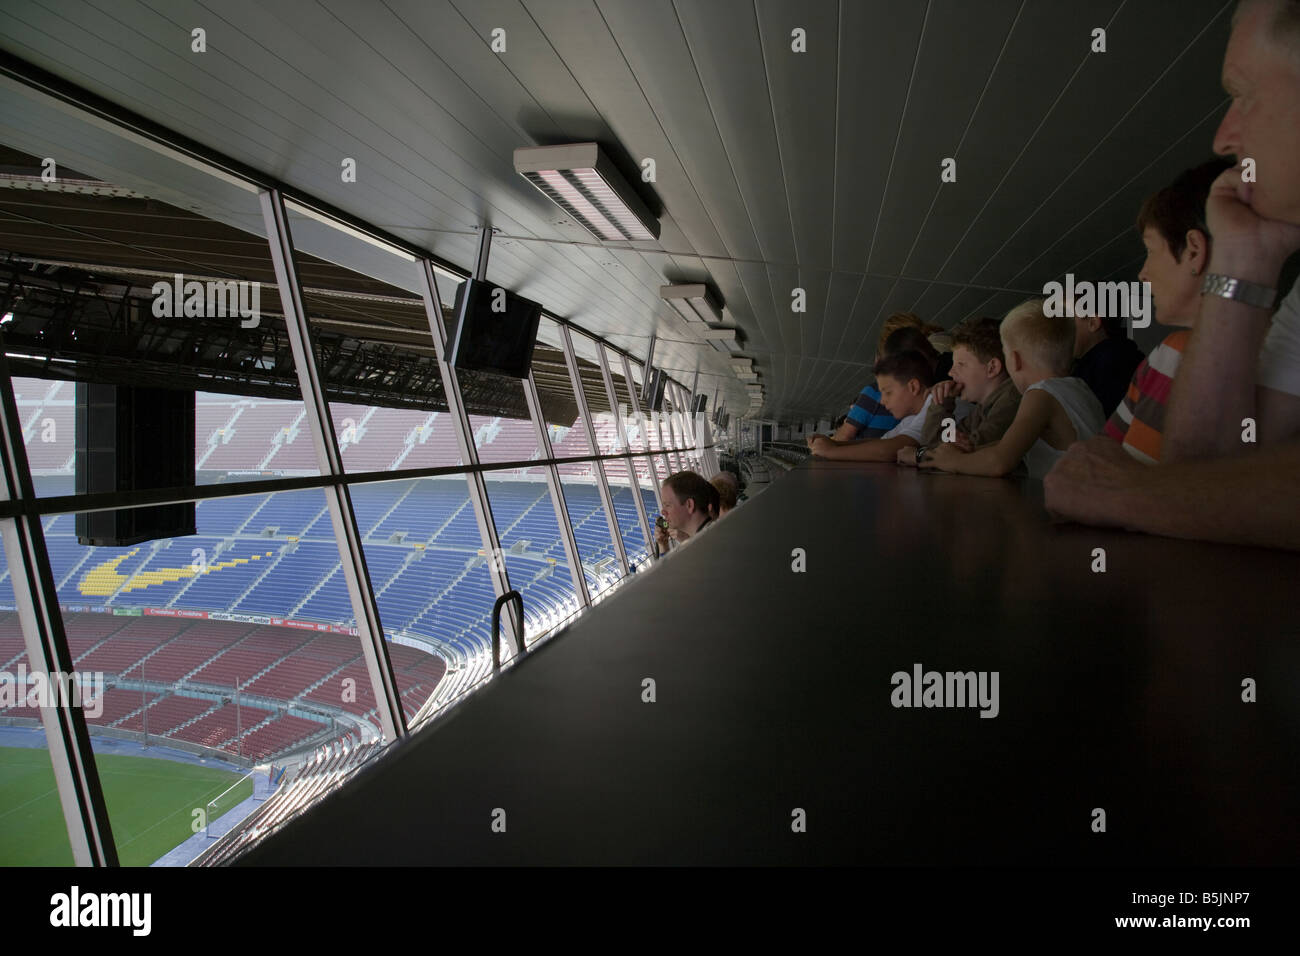 Barcelona football fans looking out over the pitch from the commentators gantry, CAMP NOU FC BARCELONA FOOTBALL - Stock Image